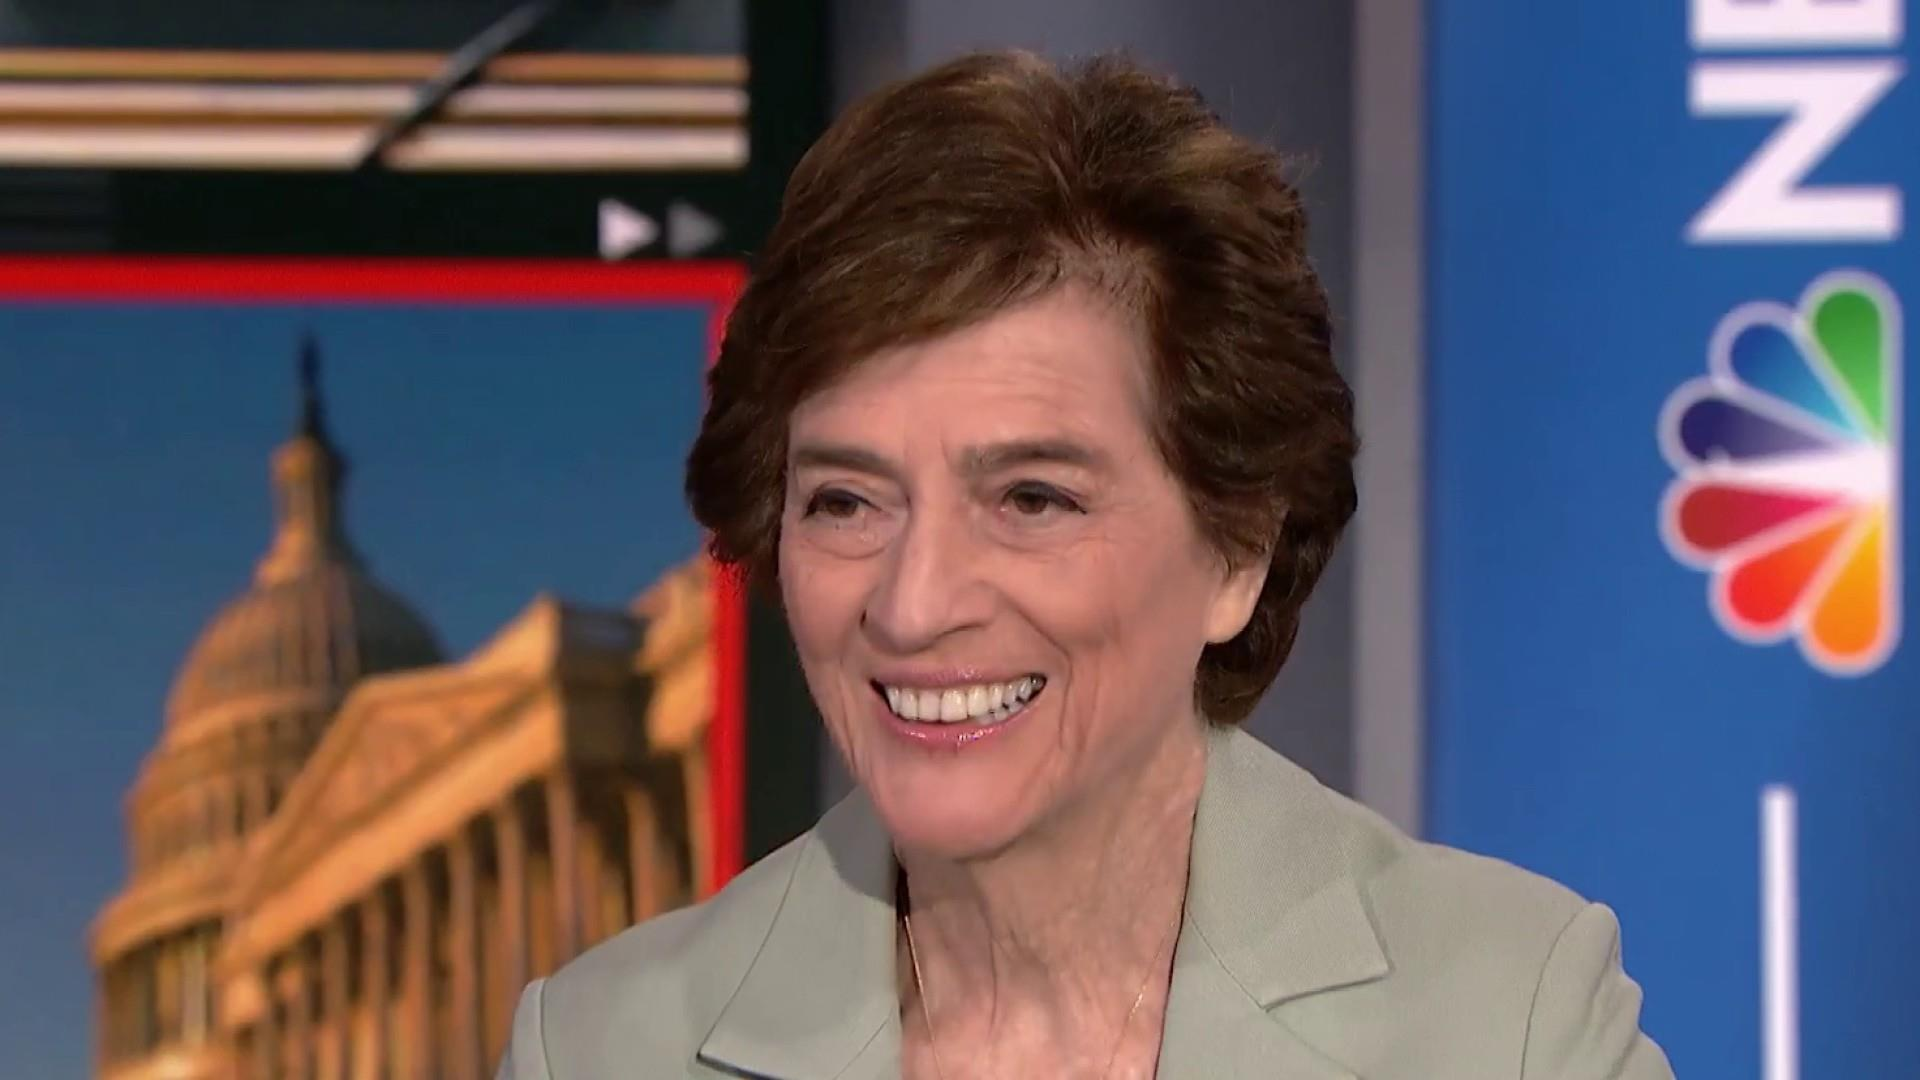 Elizabeth Holtzman on impeachment: It's up to the American people